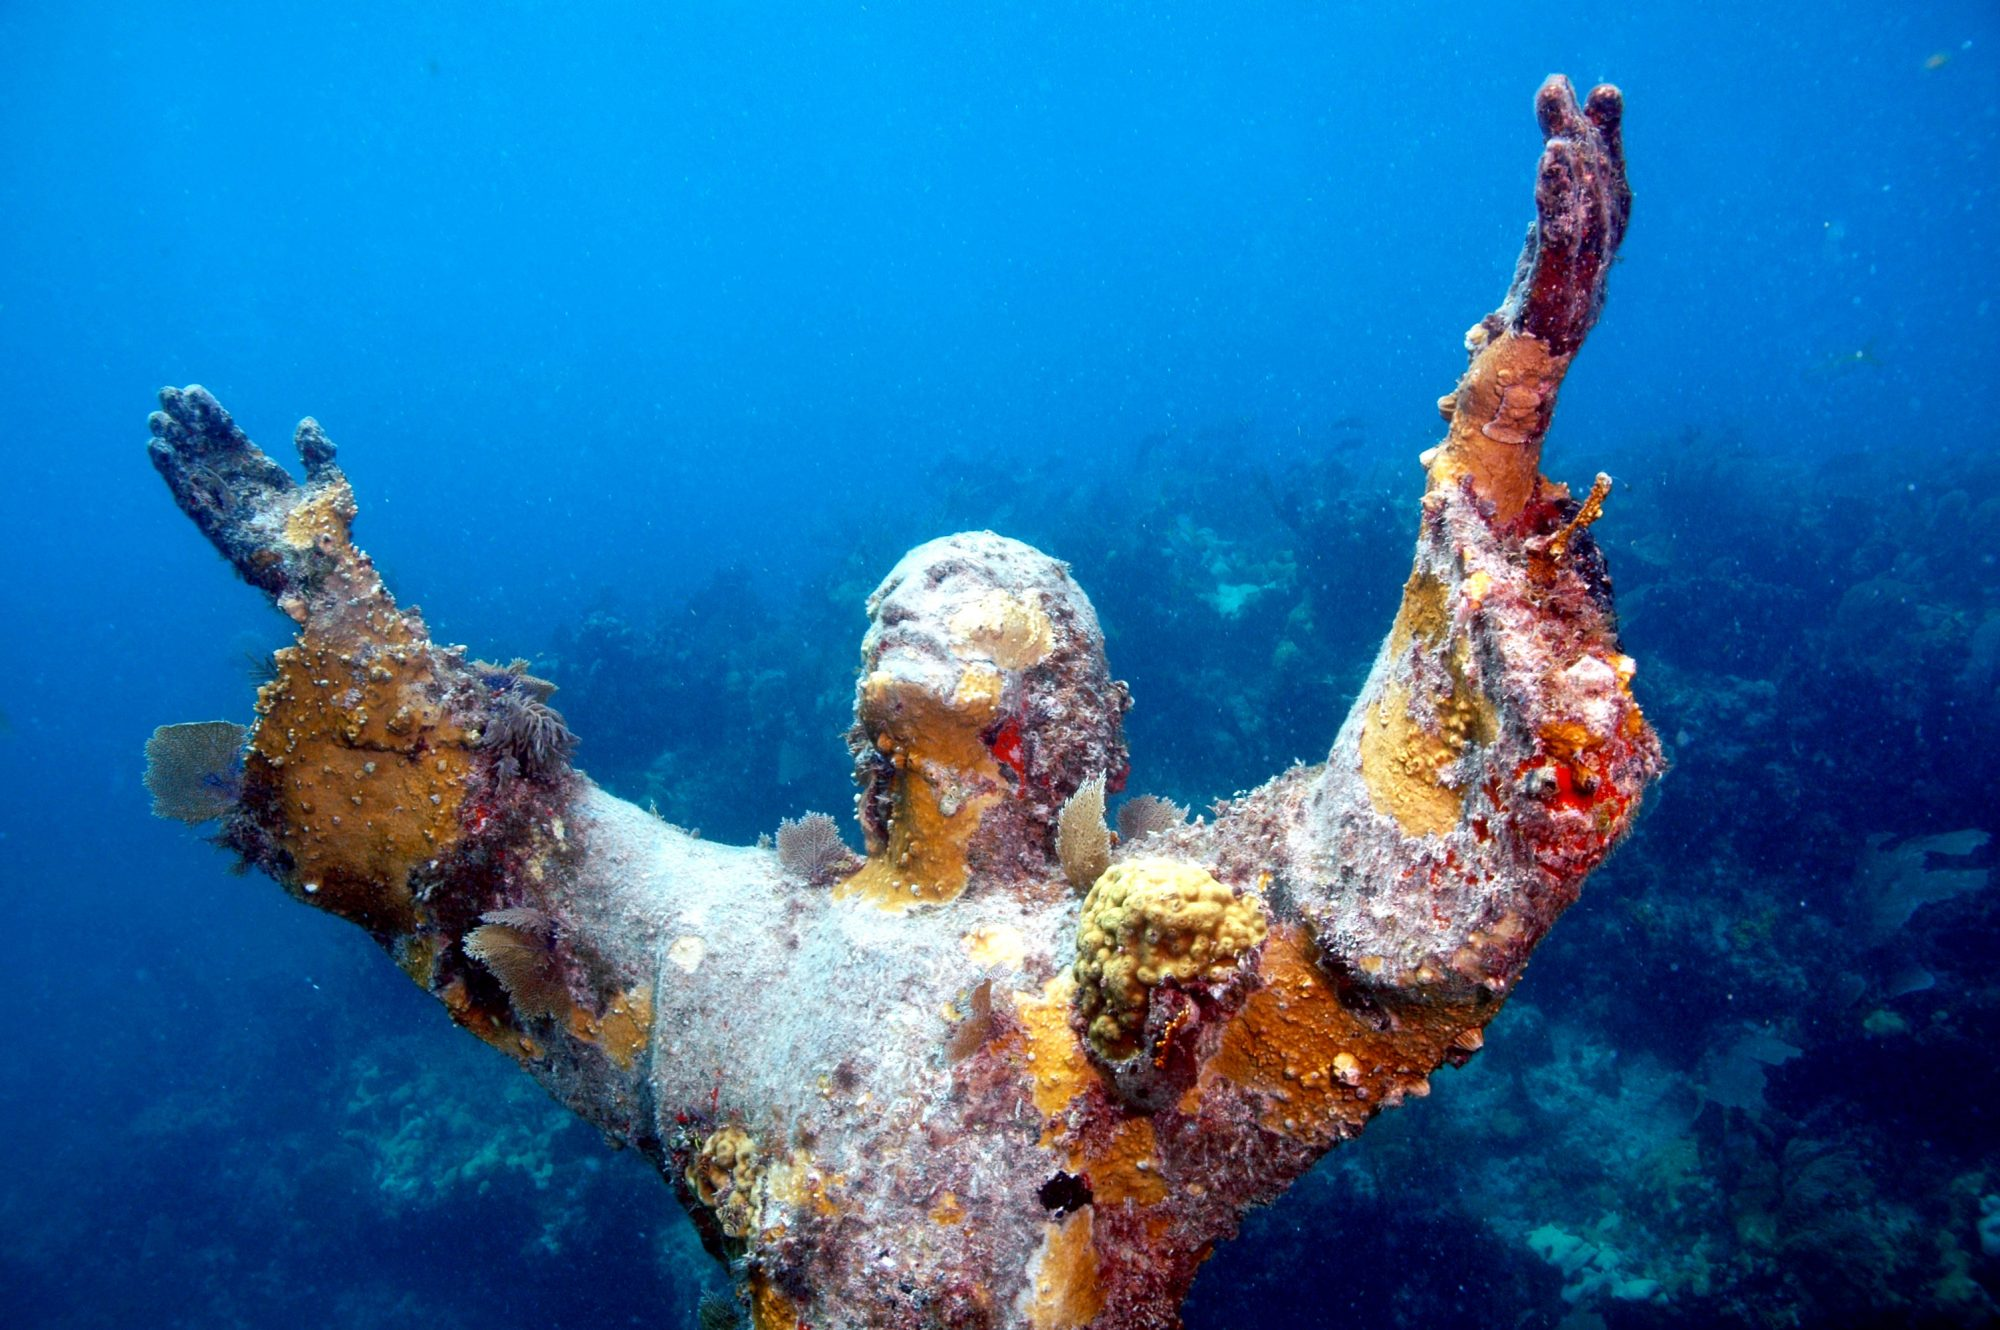 Another offshore excursion, Key Largo Dry Rocks reef east of John Pennekamp Coral Reef State Park is home to the famed Christ of the Abyss statue, which was sunk there in 1965. The nine-foot bronze statue of Jesus Christ stands in 25 feet of water and reaches up with outstretched arms toward the surface, surrounded by tropical fish and other marine life.